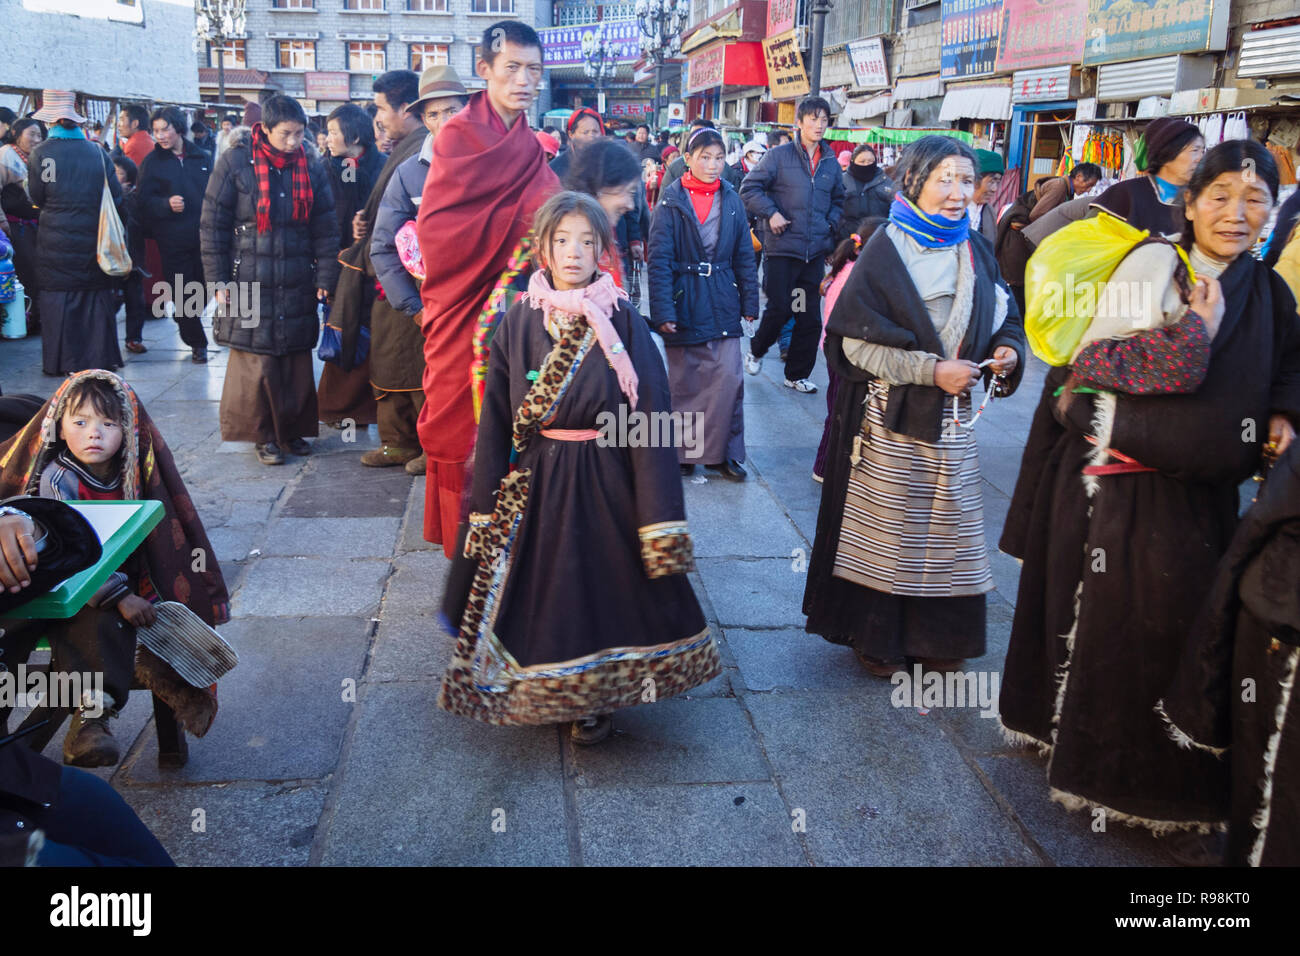 Lhasa, Tibet Autonomous Region, China : Tibetan people walk in the streets of the Barkhor district. - Stock Image